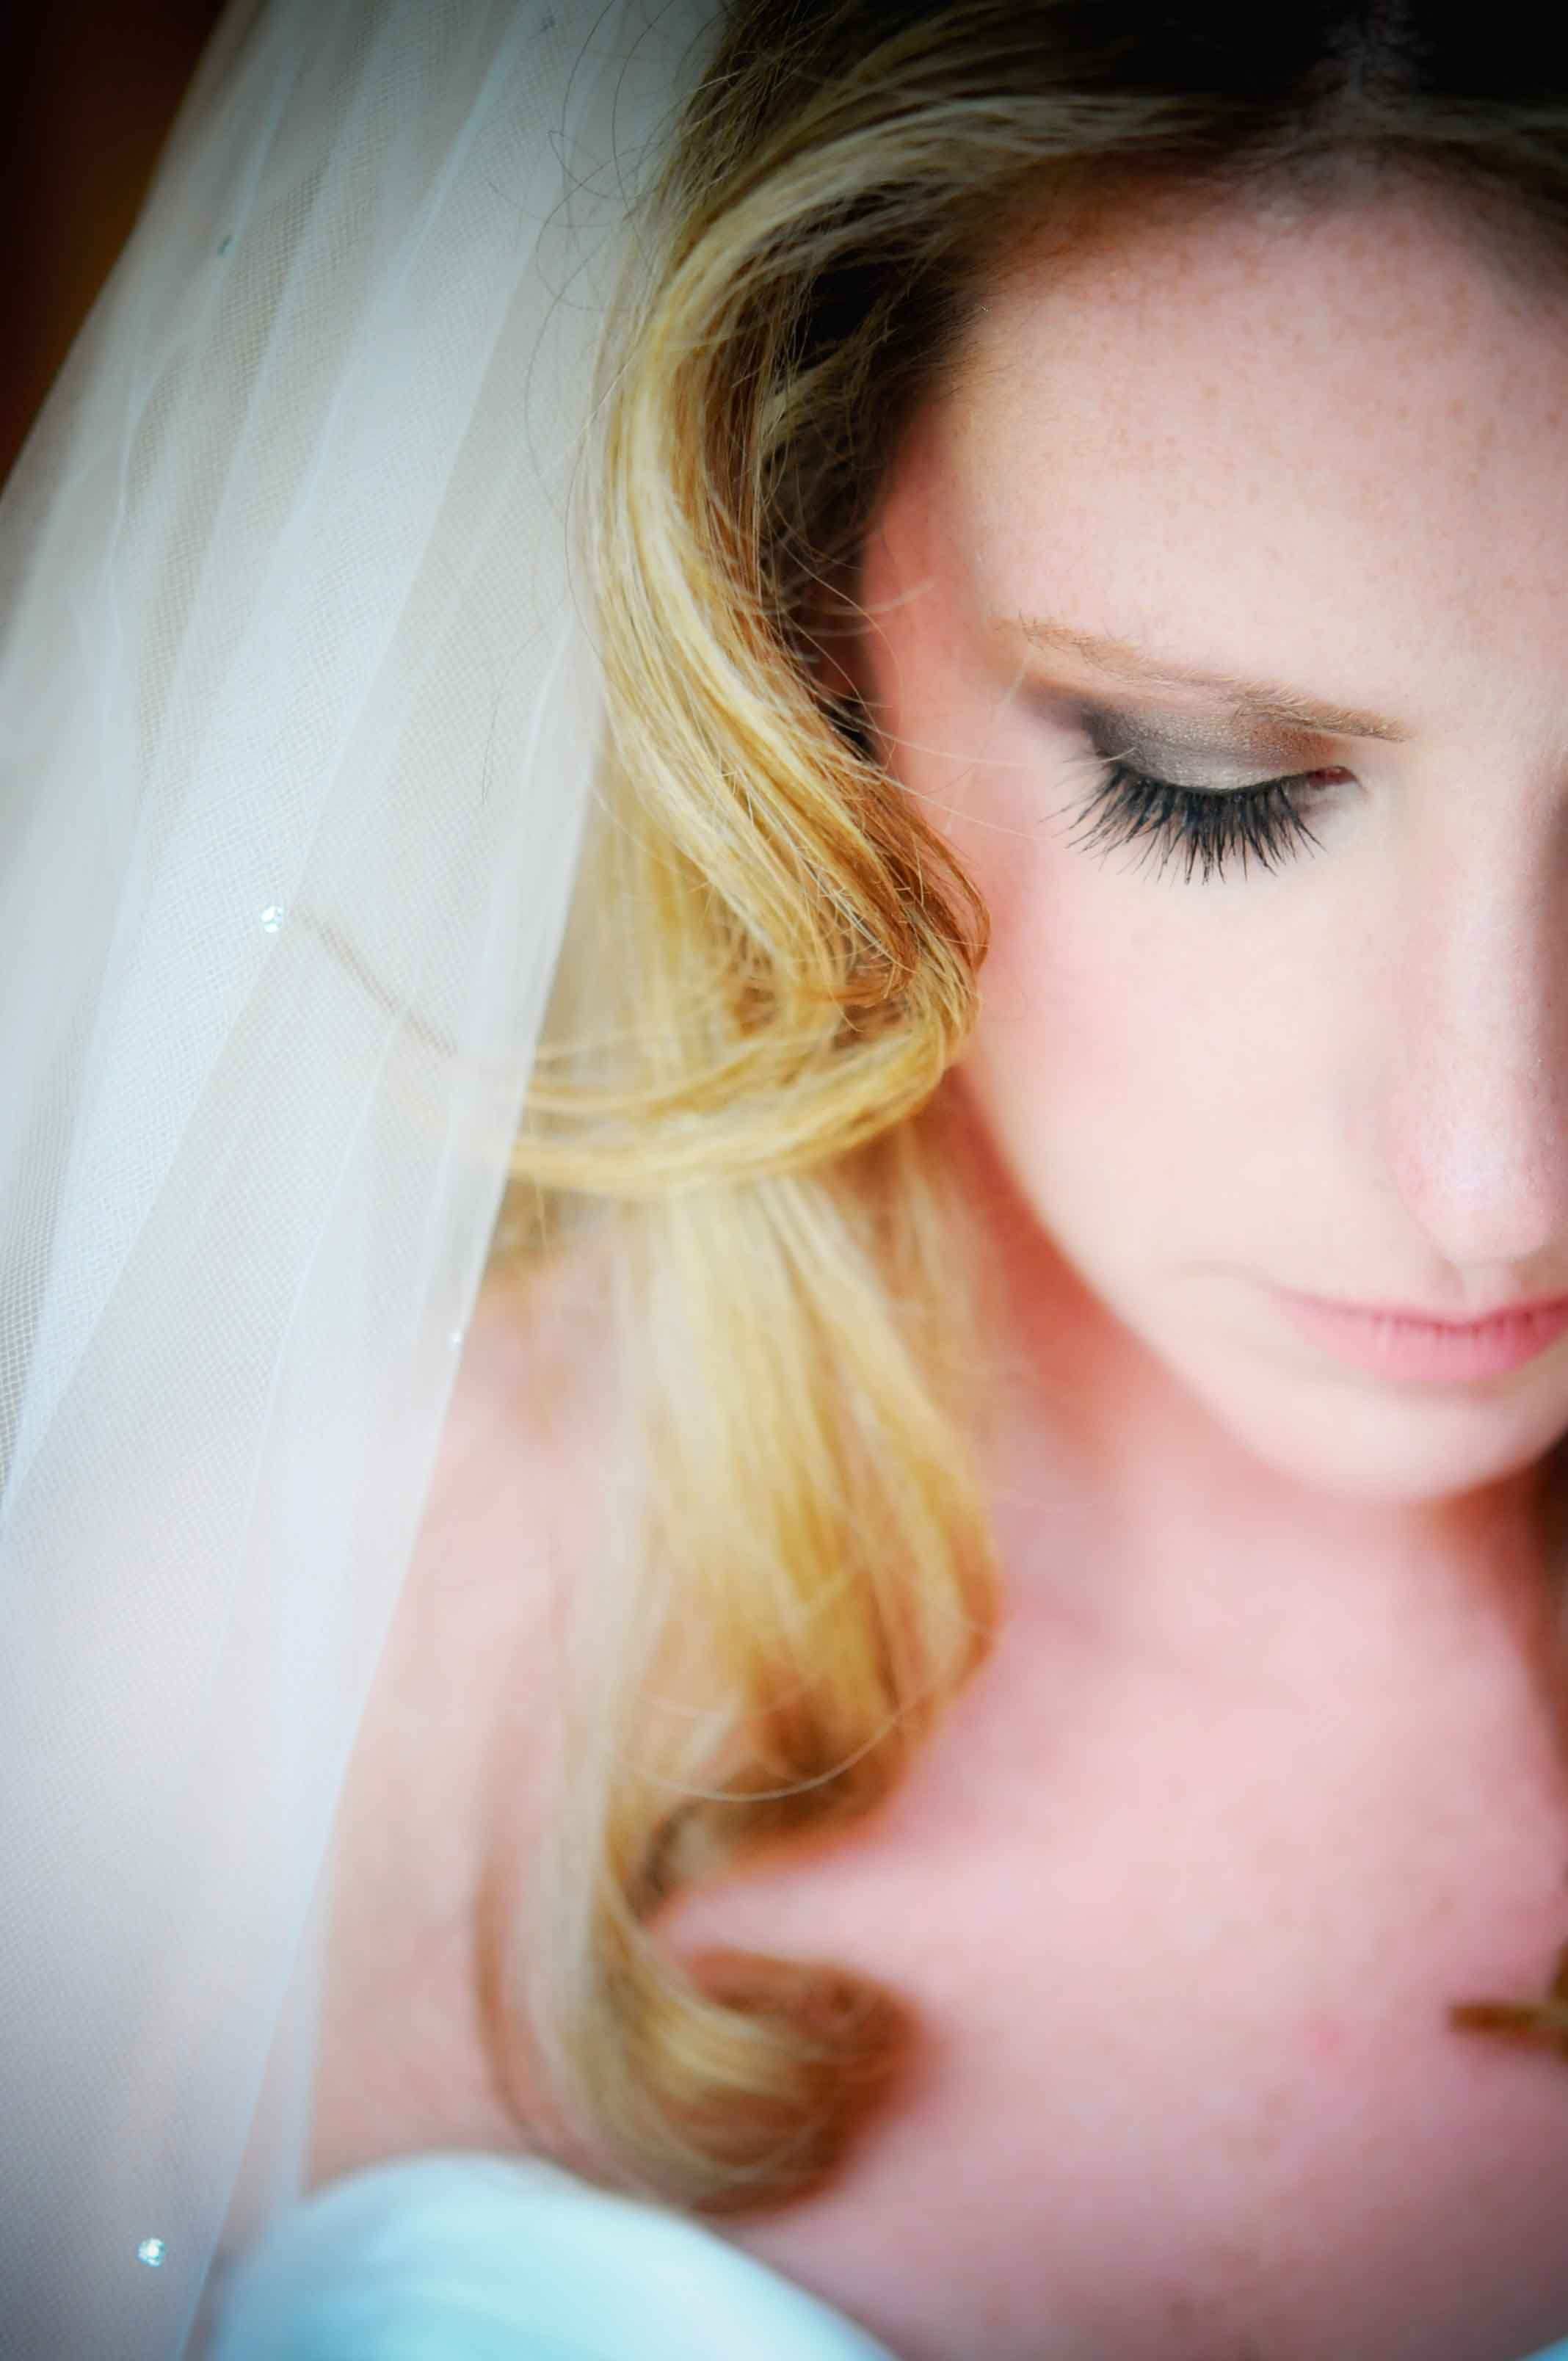 Makeupbybrea Weddingmakeup Bride Weddings Boston Eyemakeup